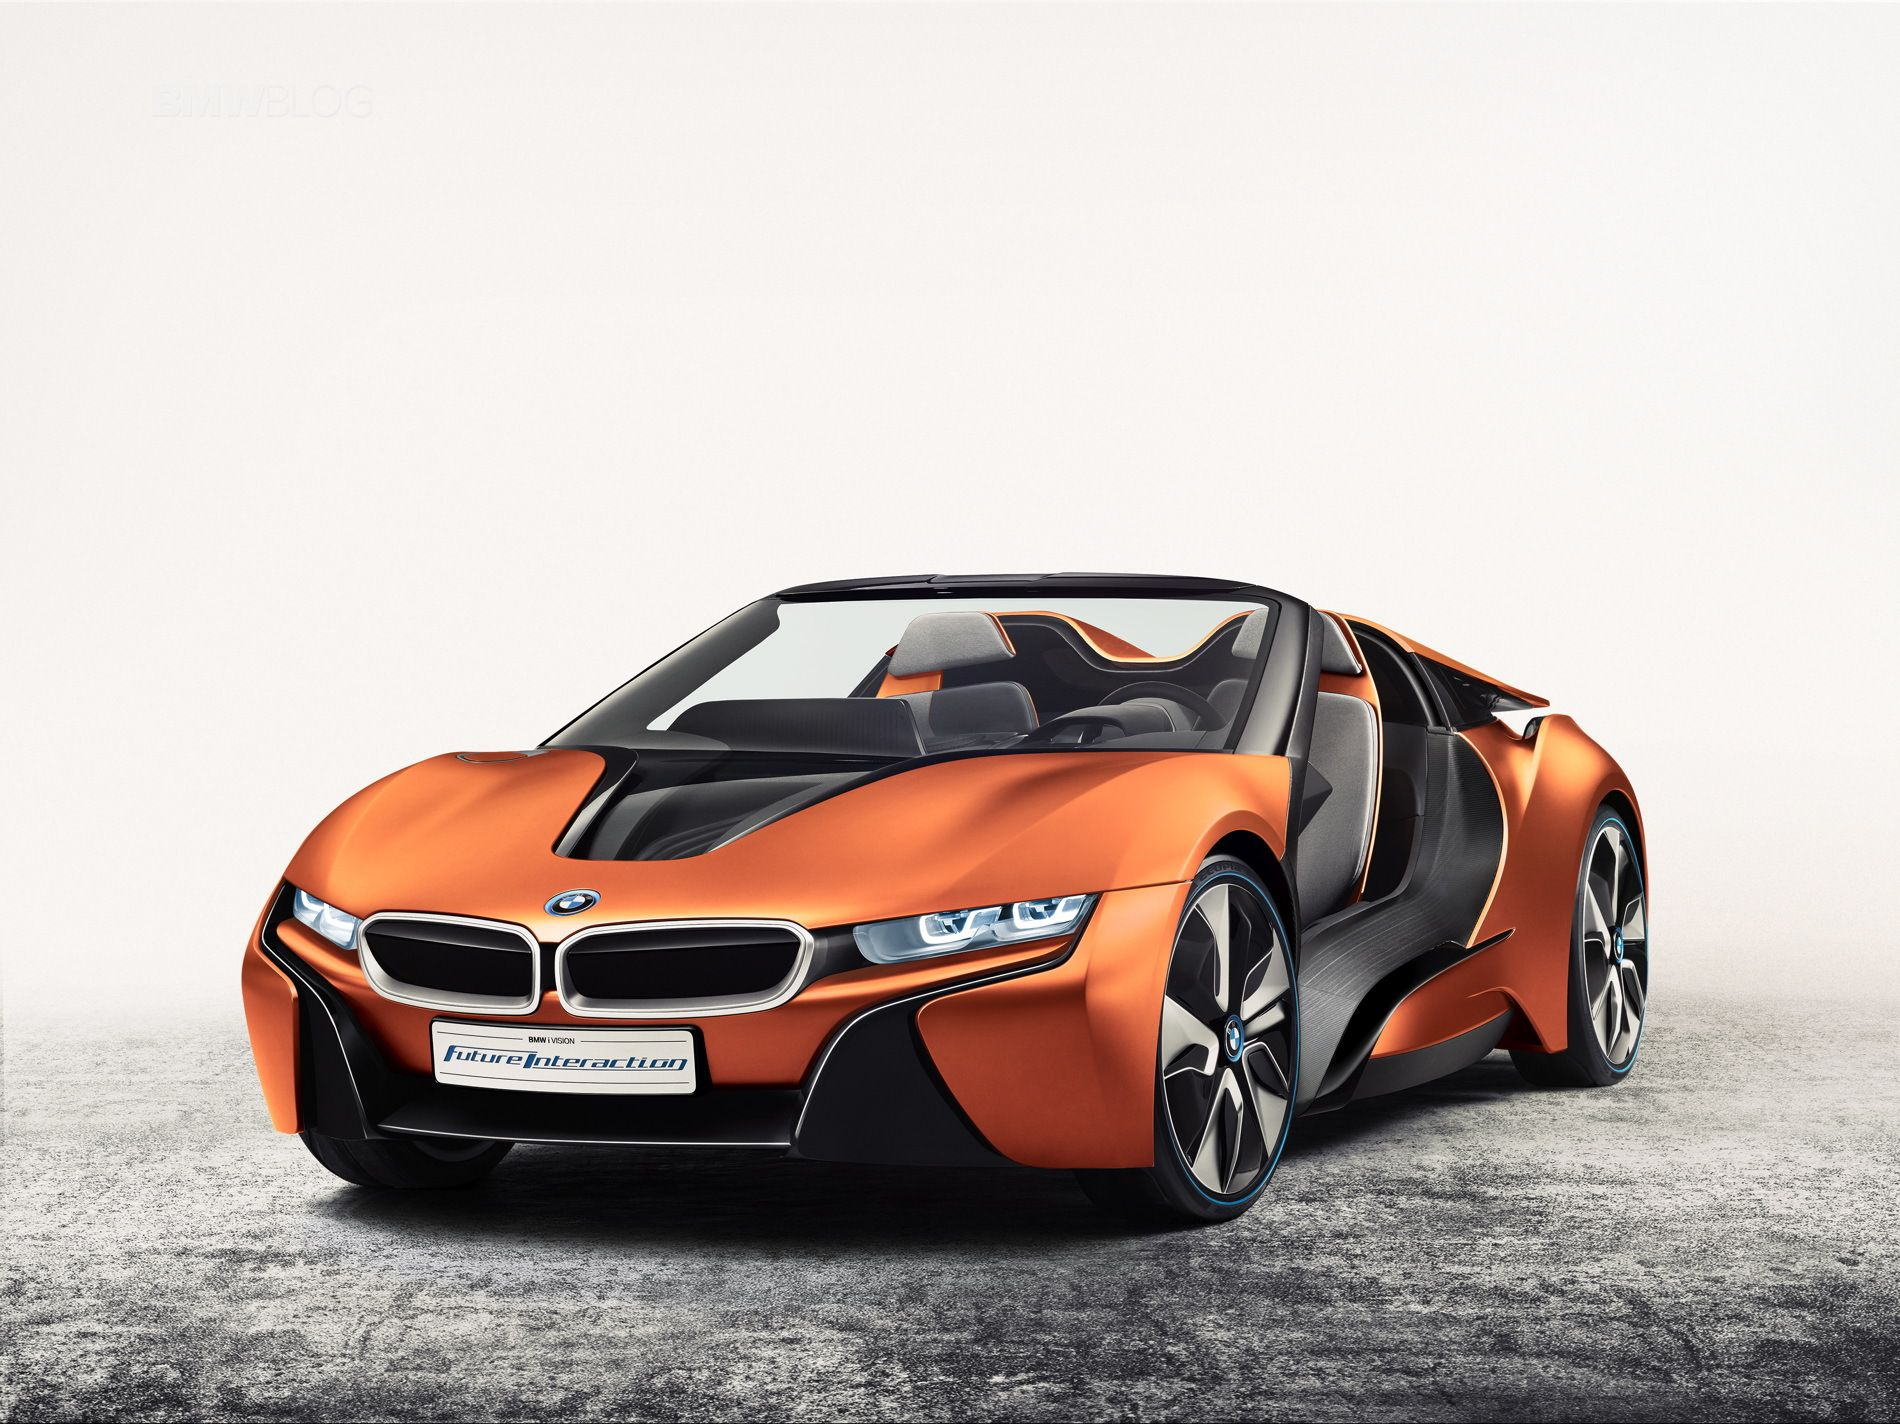 Bmw i vision future interaction wins special prize at auto test sieger 2016 awards